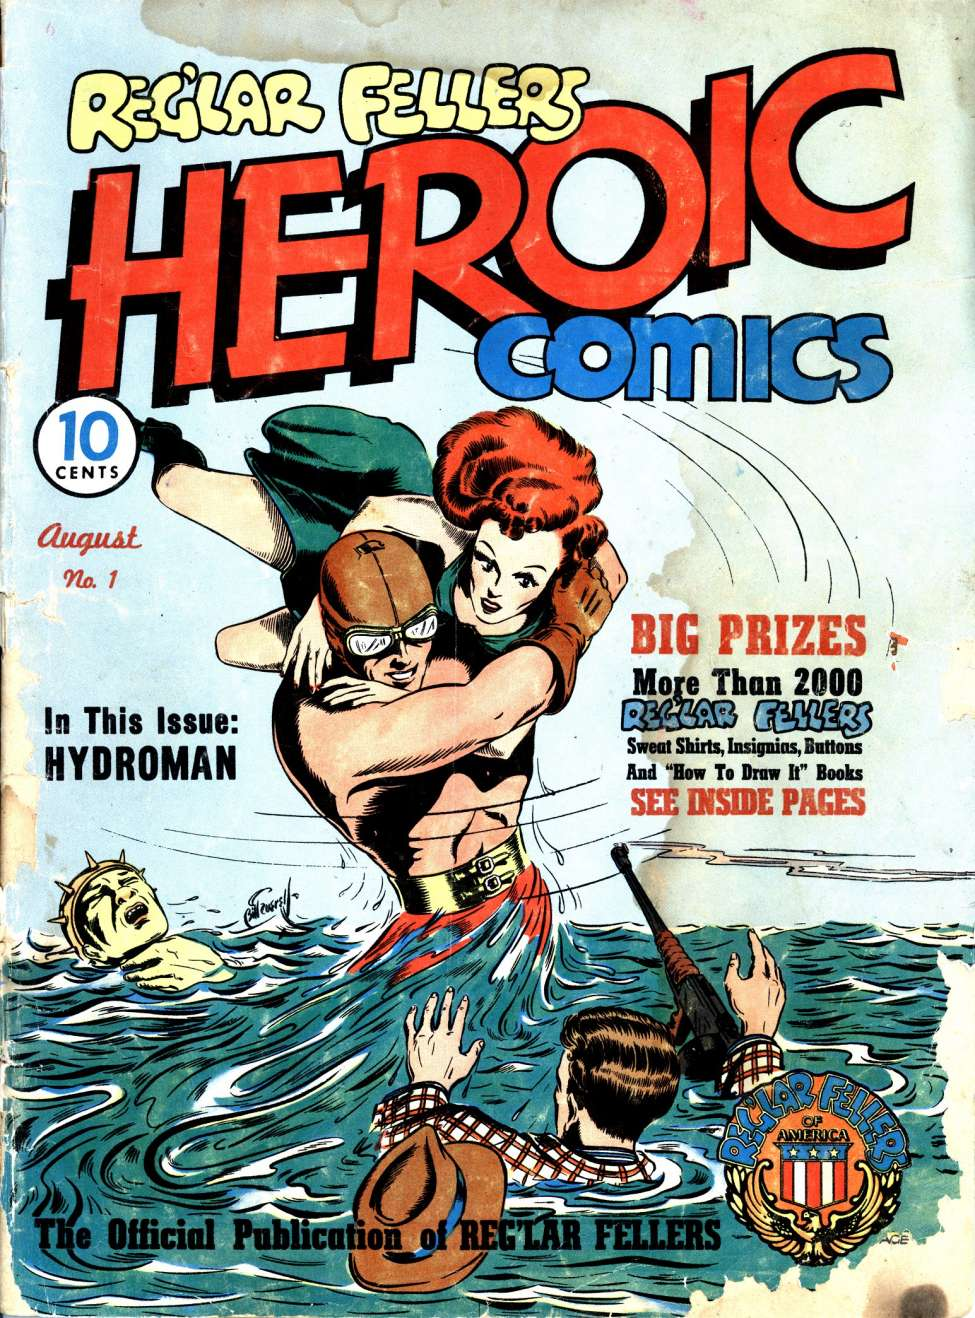 Image result for reg'lar fellers heroic comics